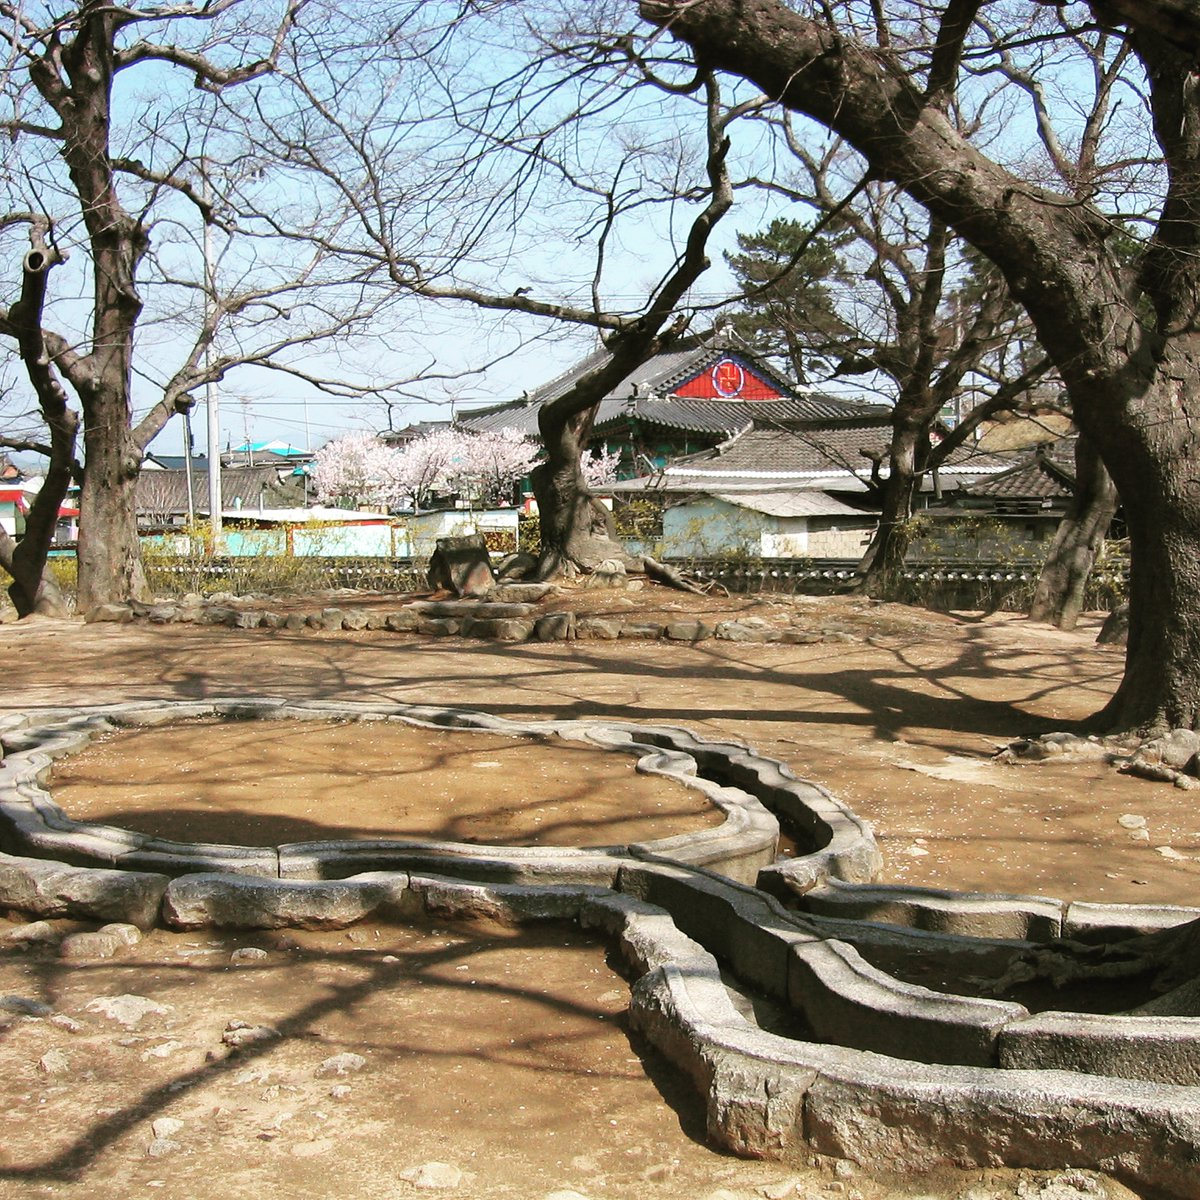 April 2, 2004 #gyeongju #SouthKorea #travelblog #travelblogger #travelbloggers #travelmemoir #southkoreatrip #backpacker #adventure #backpackerstory #backpackerlife #travelkorea #travelmemories #travelsinthelandofhunger #sillakingdom #poseokjeong #royalpavilion #unifiedsillapic.twitter.com/ysll3uAro6